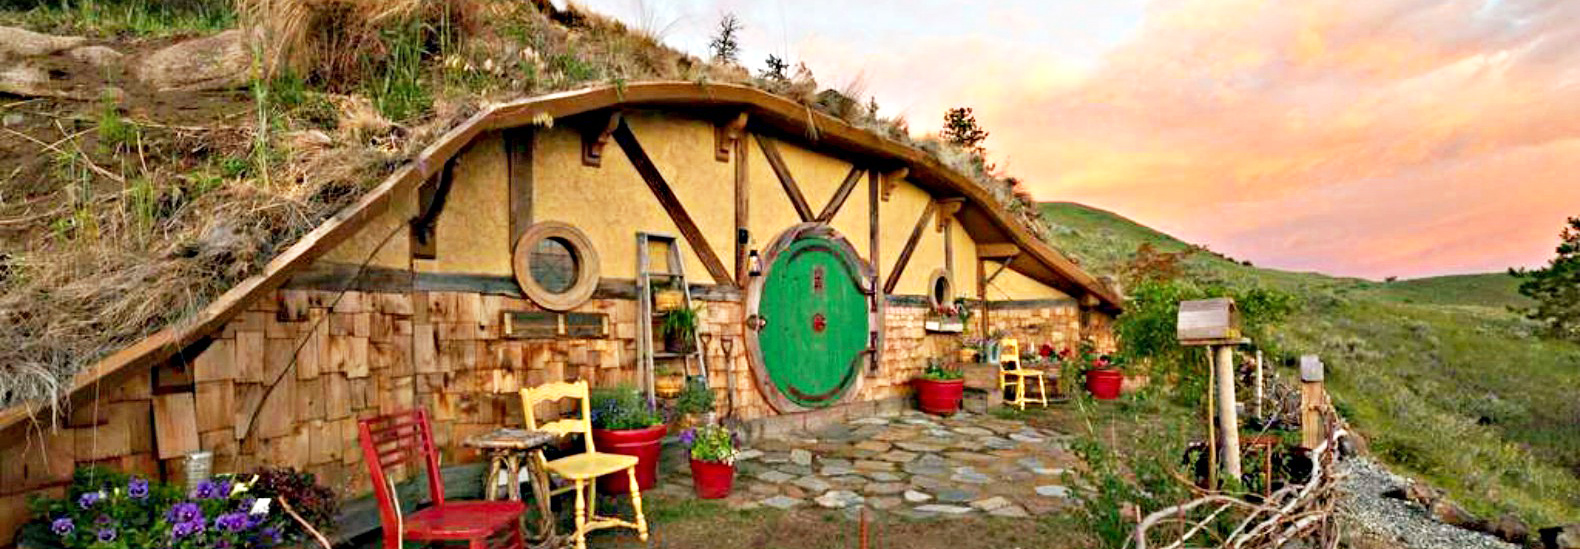 Spend The Night In This Magical Hobbit House Tucked Into The Washington  Shire